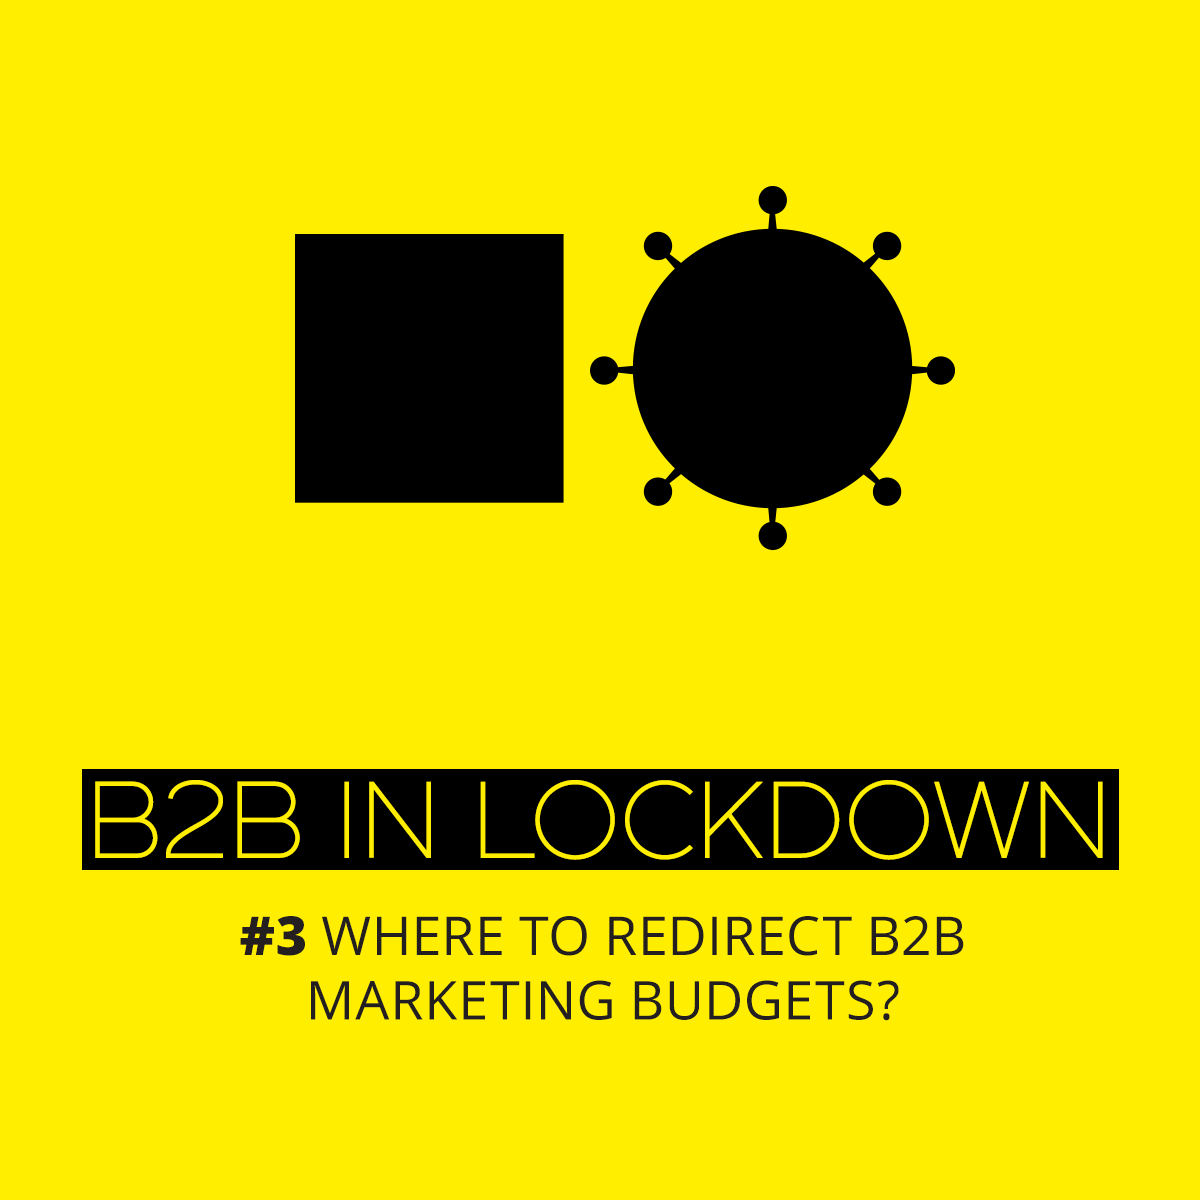 B2B IN LOCKDOWN #3: Where to redirect B2B marketing budgets?